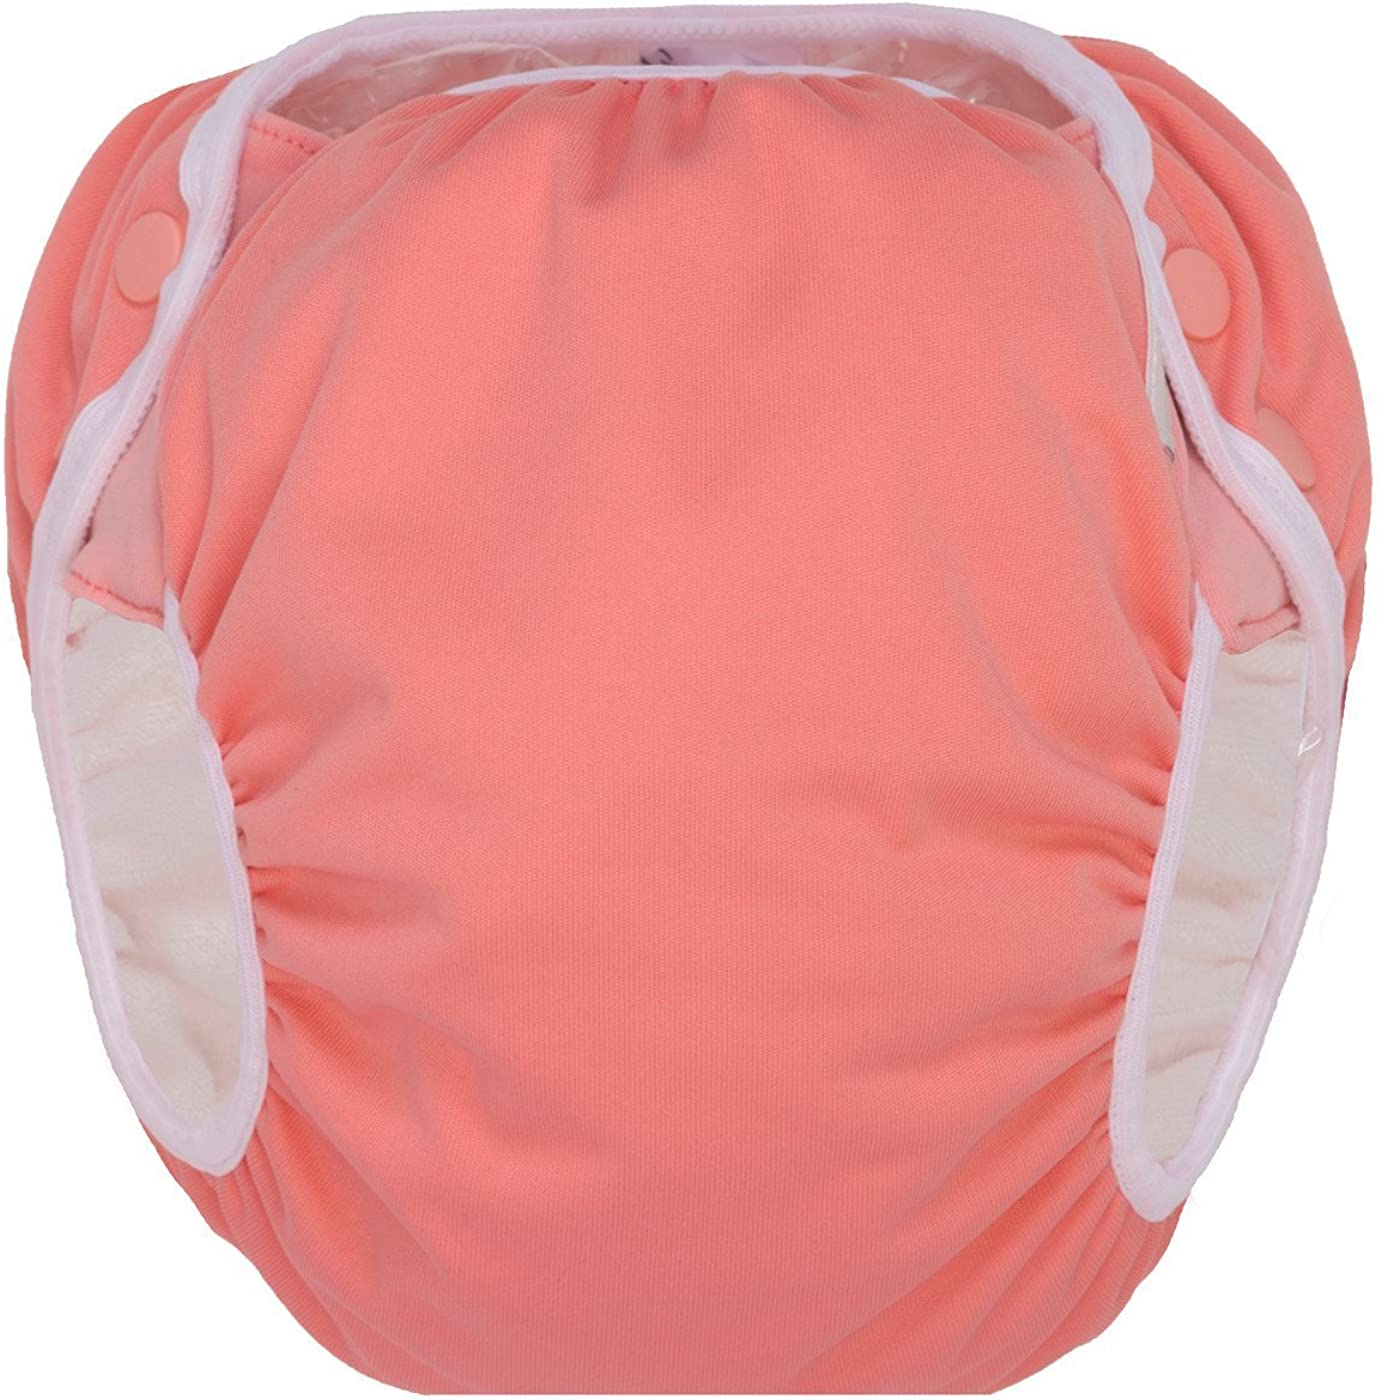 Infant and Toddler GroVia Reusable Waterproof Swim Diaper for Baby